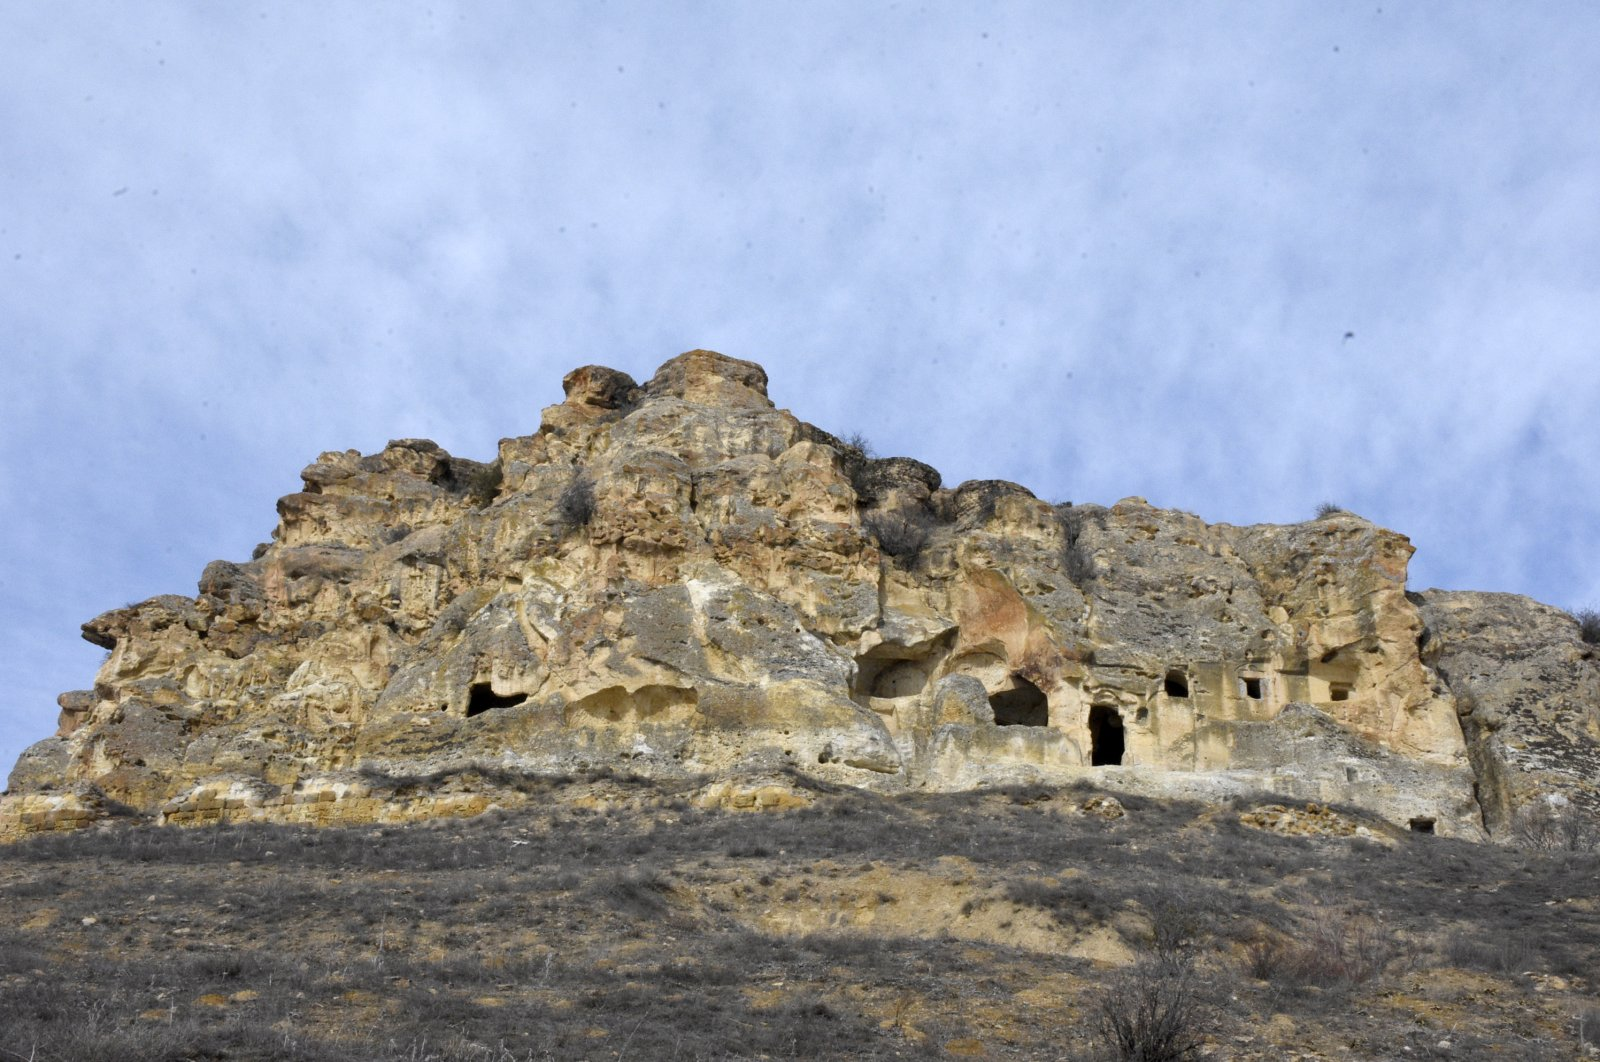 The monastery was built in the 13th century by rock carving. (AA Photo)